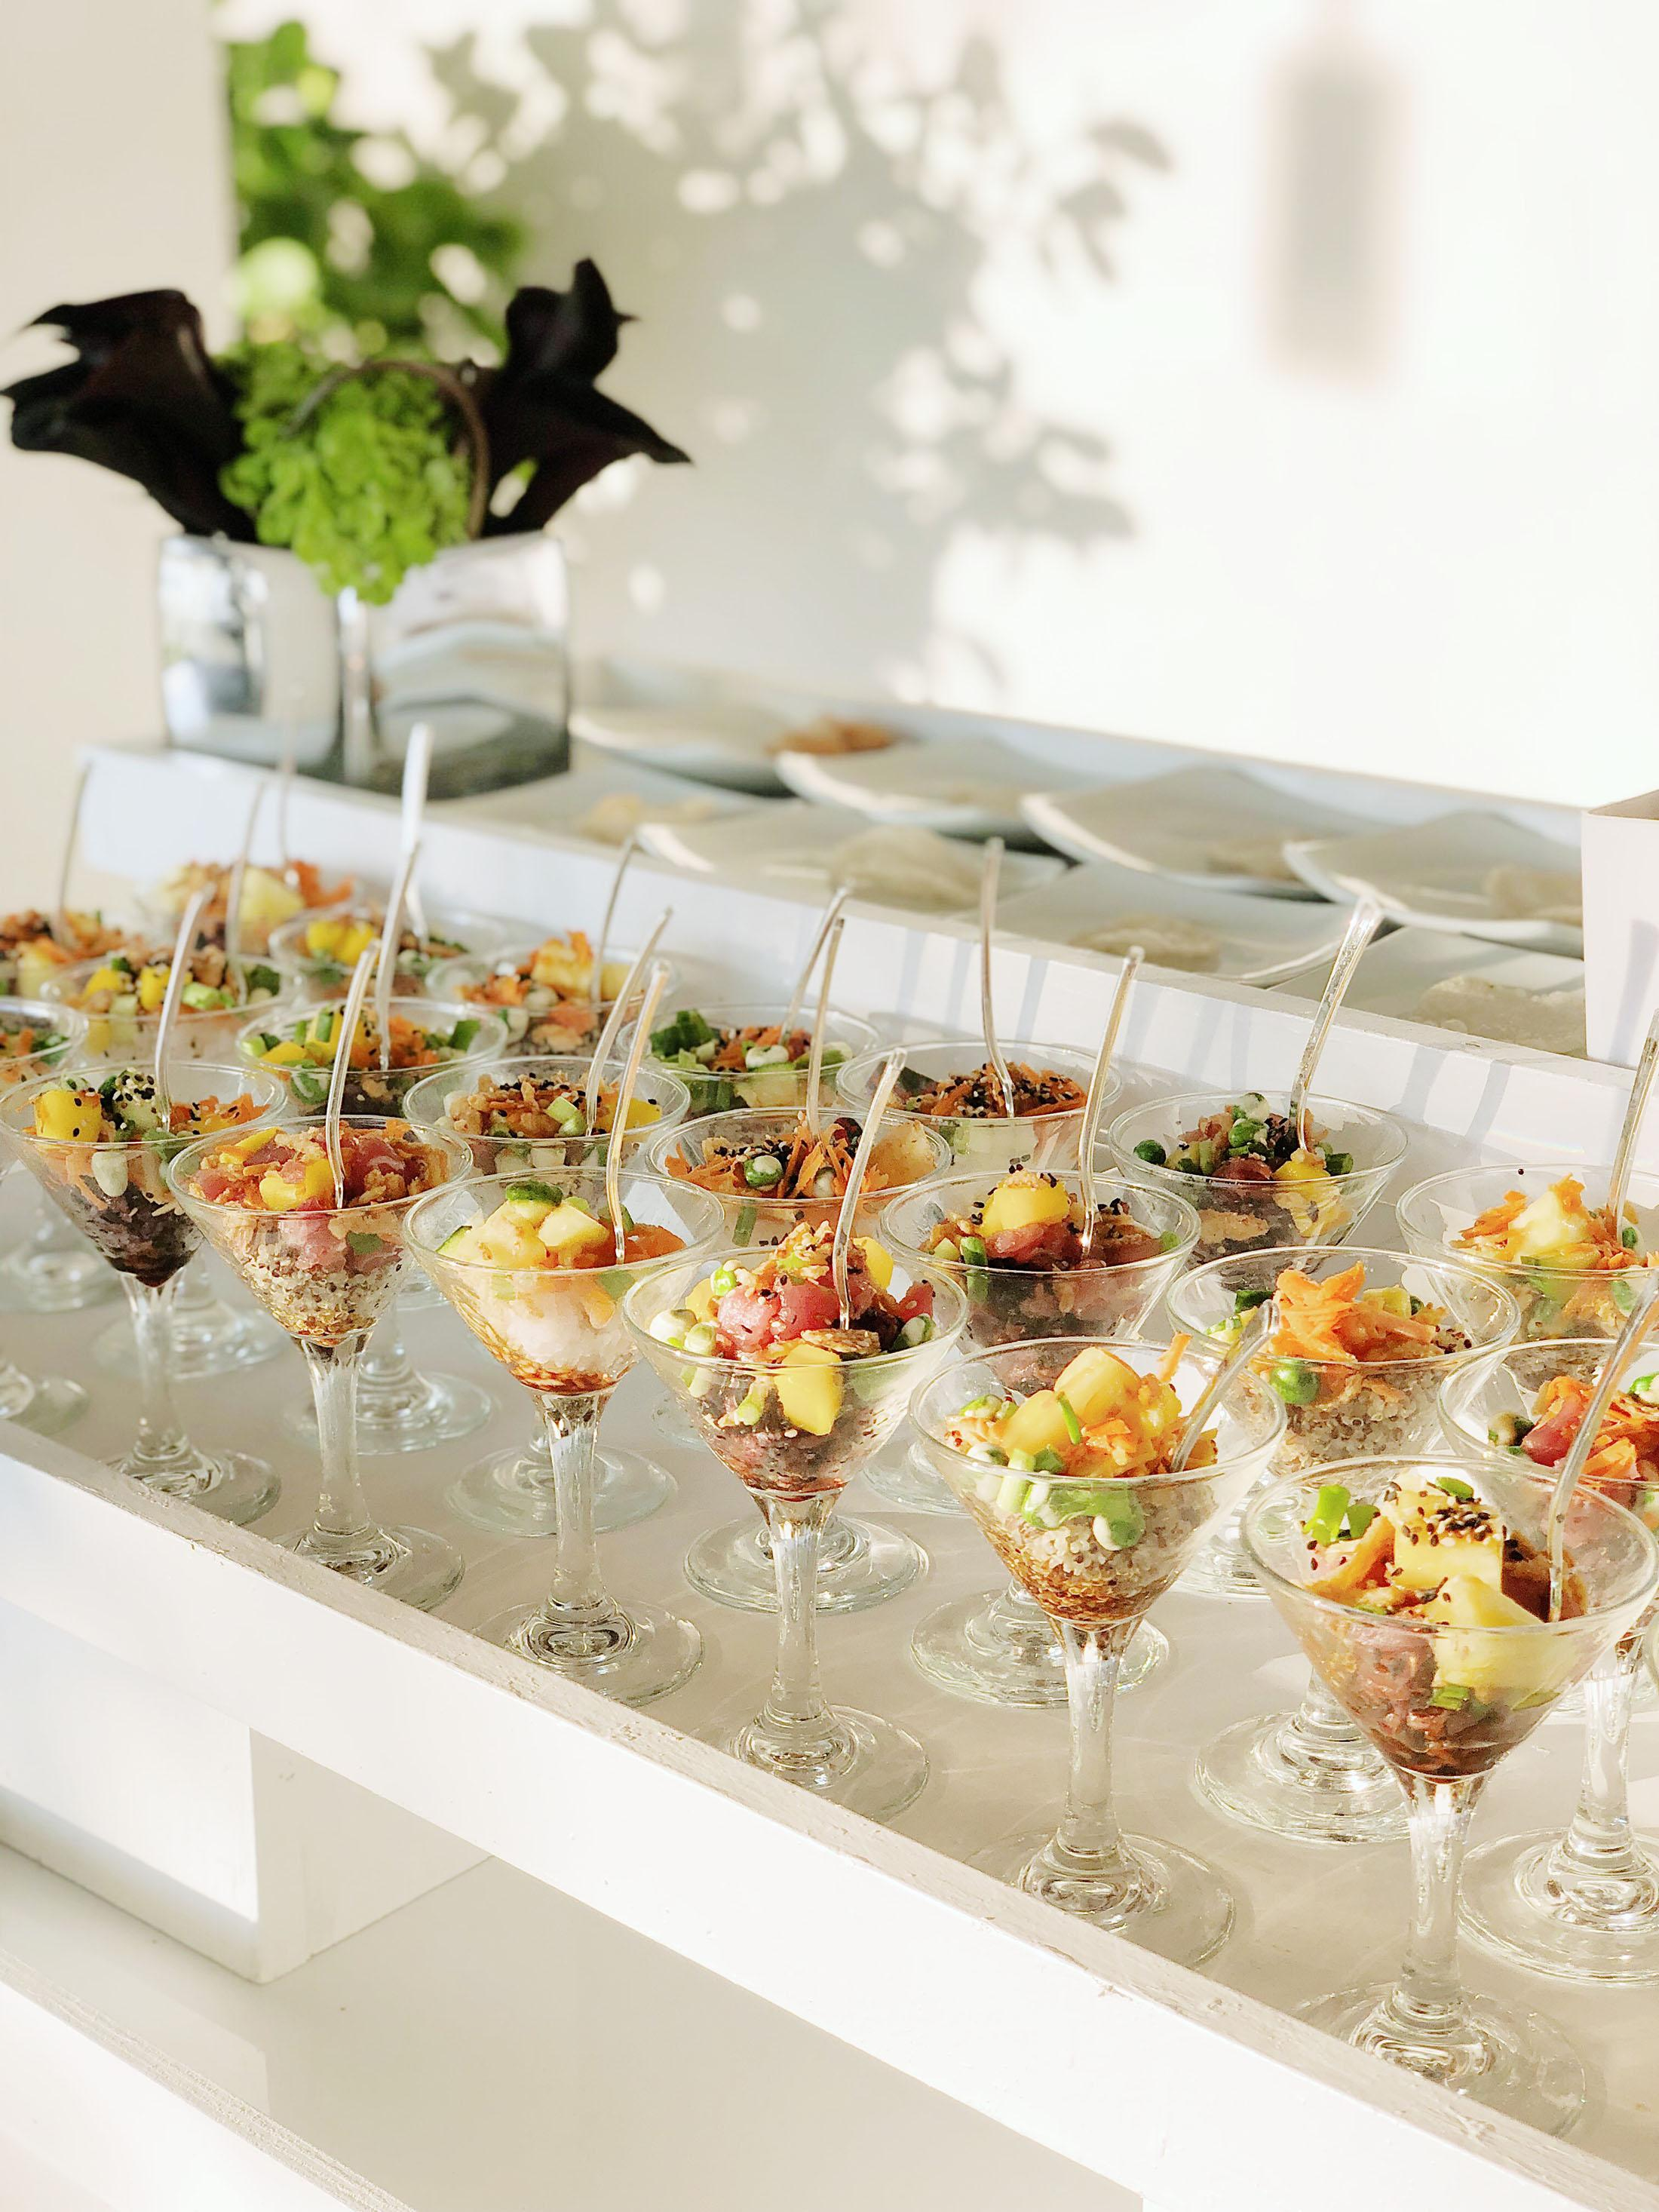 Martini glasses with food.